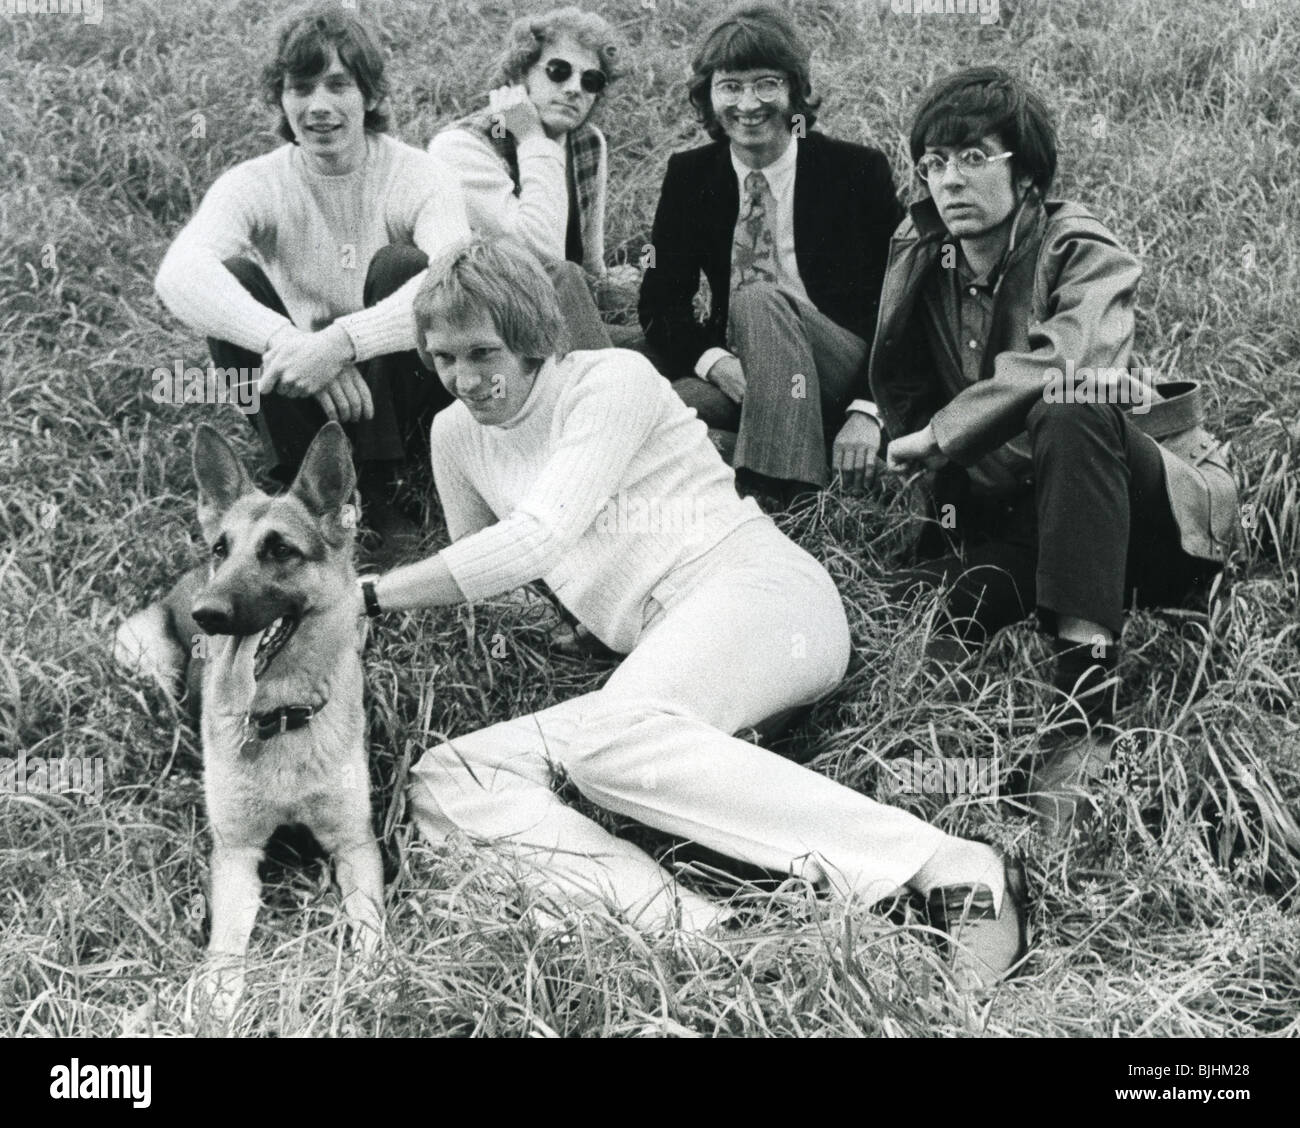 MANFRED MANN - UK group in 1968 with Mike d'Abo - see Description below for lineup - Stock Image